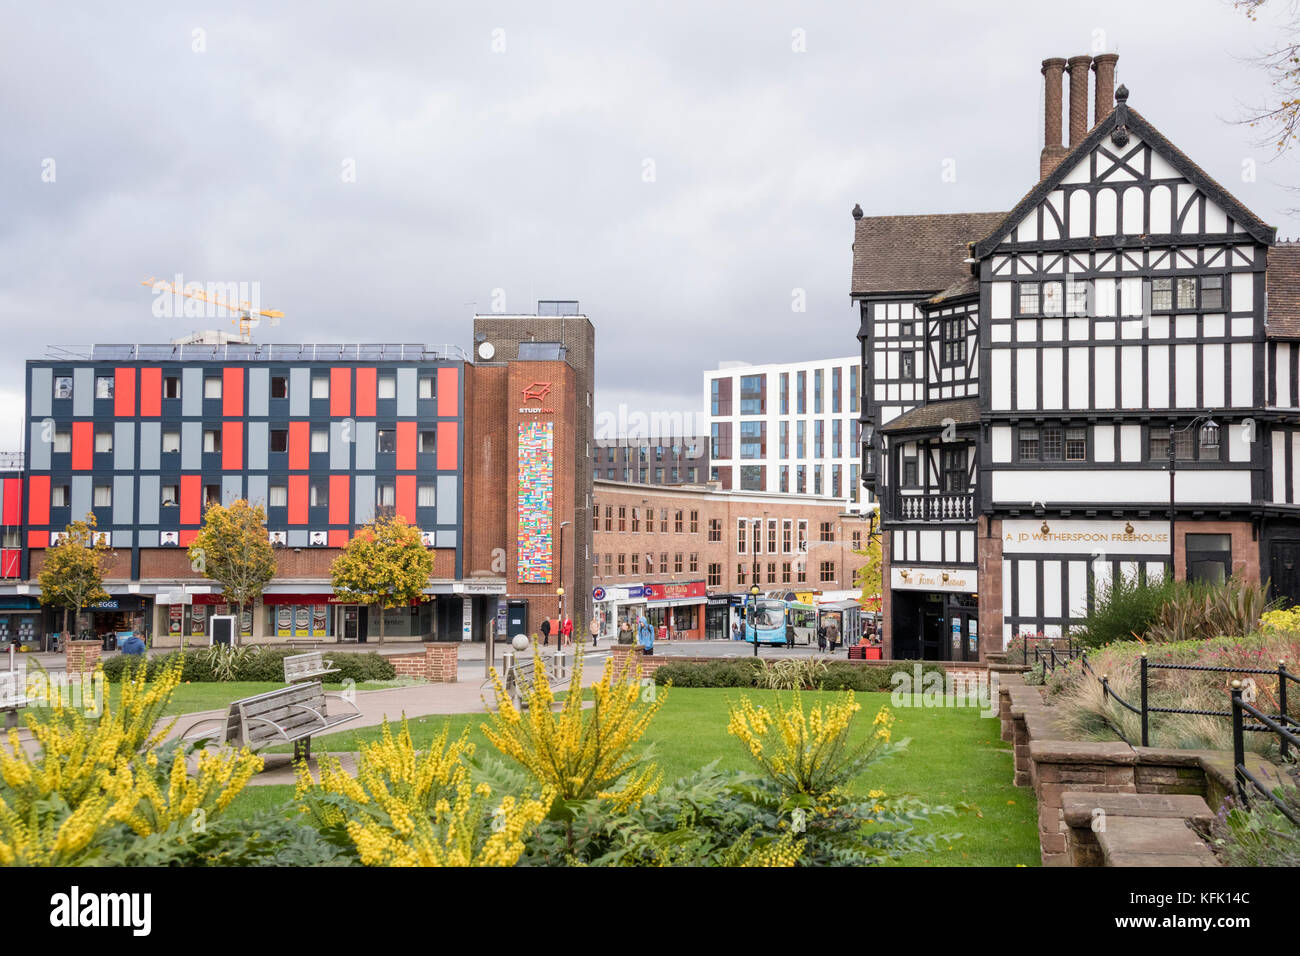 Coventry city center, England, UK - Stock Image